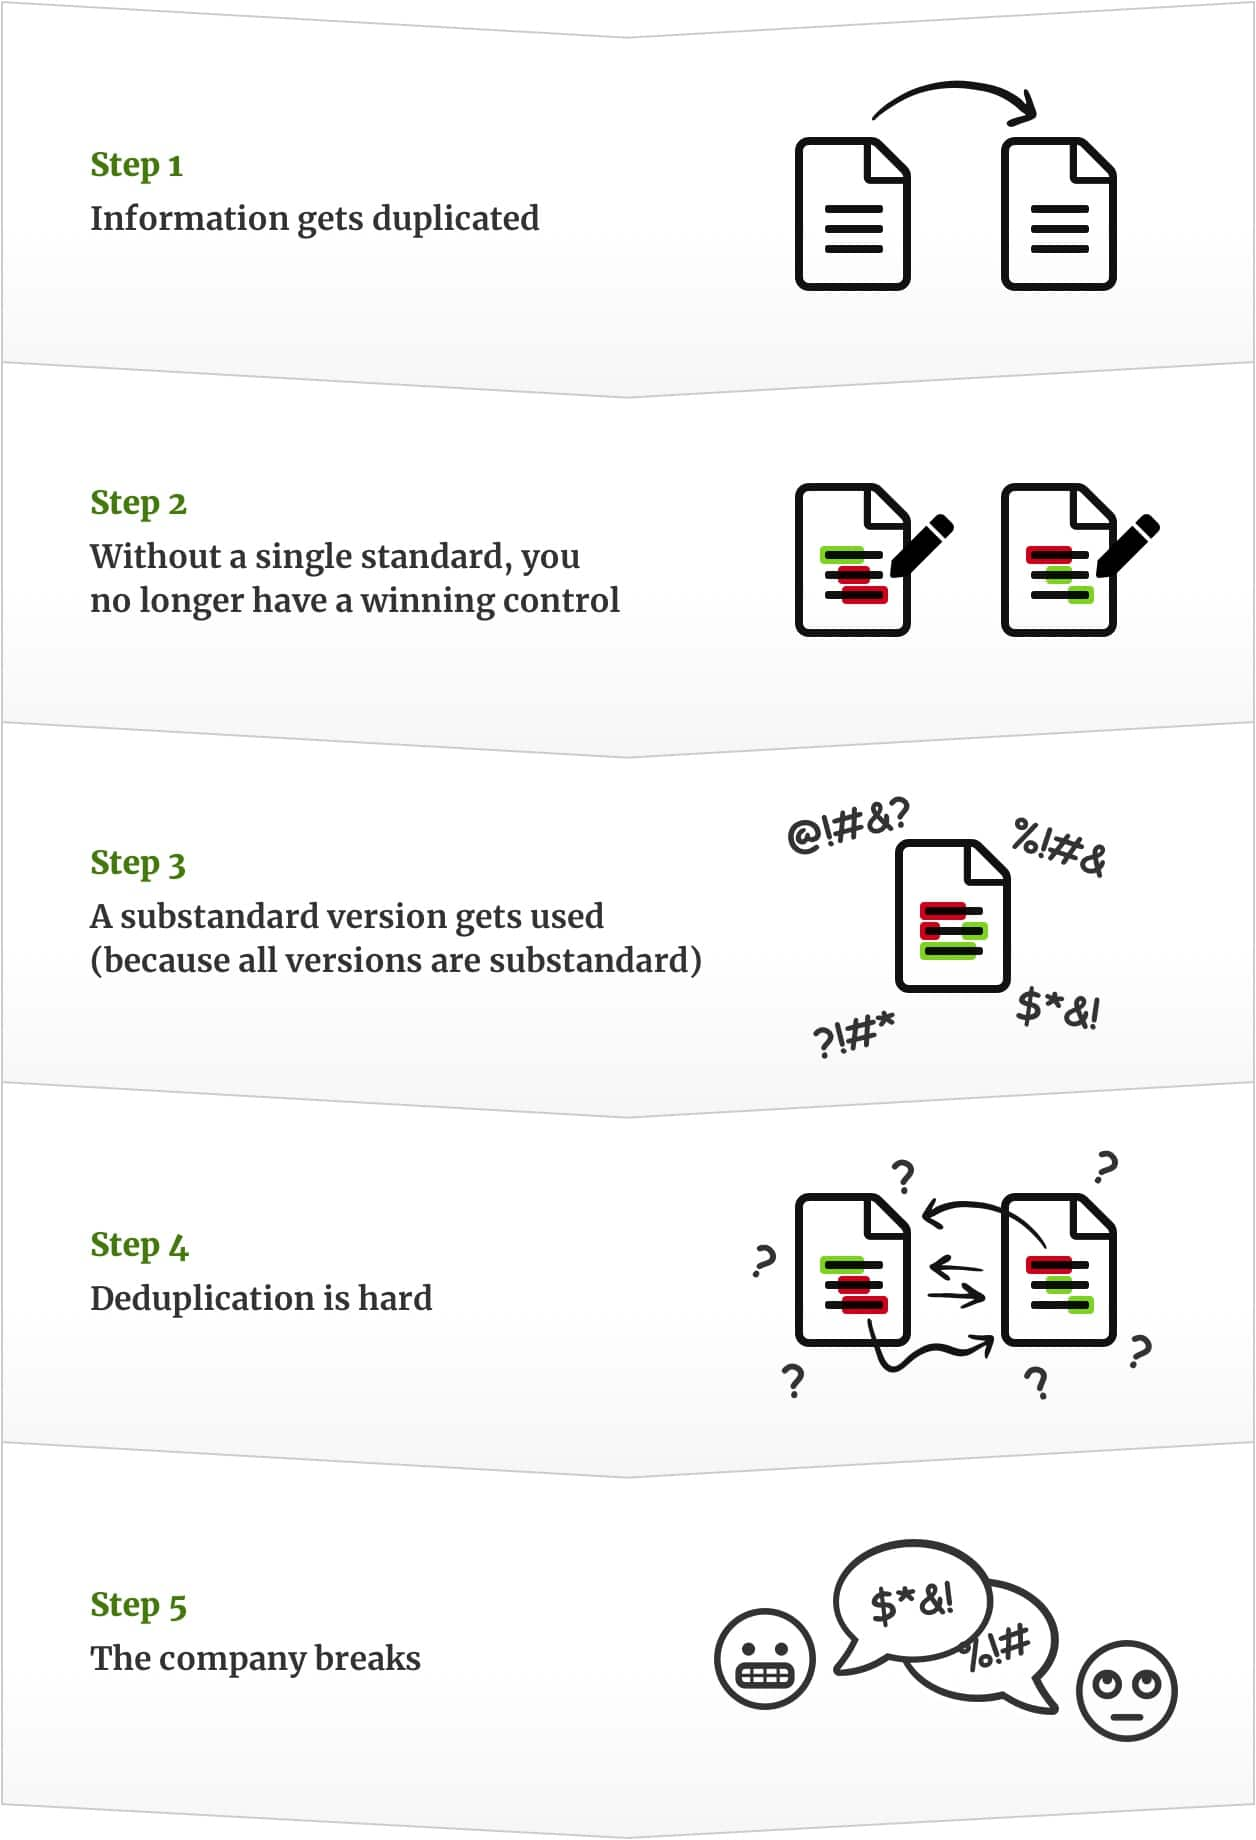 Diagram showing duplication is evil by showing how duplication causes substandard versions to be used over the winning version